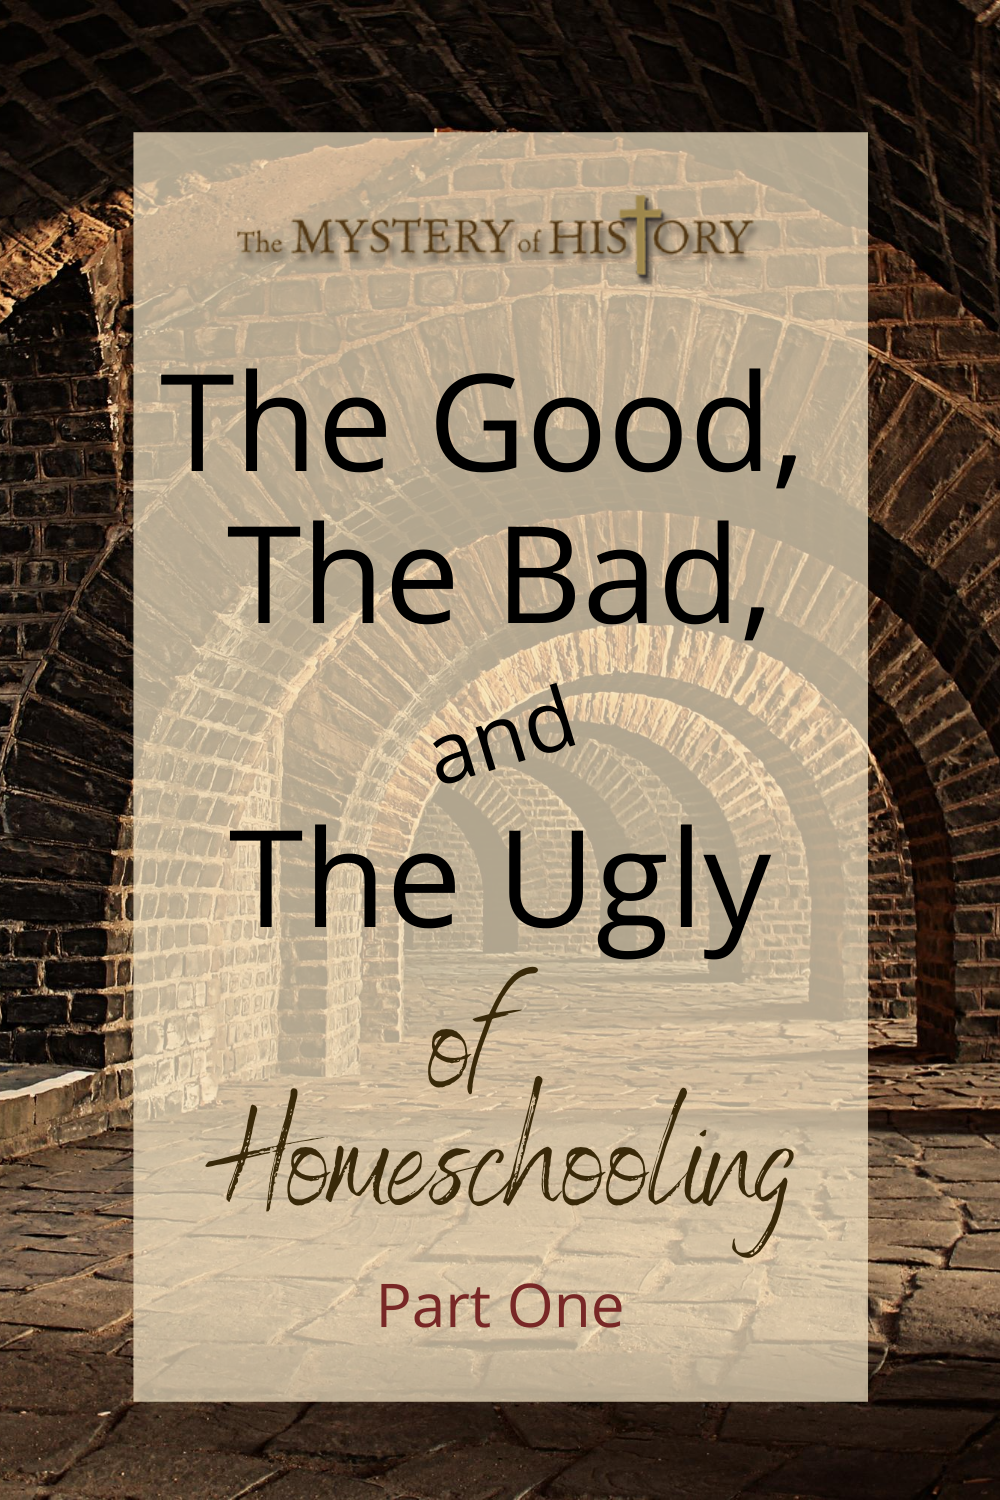 """Homeschool has several sides. Like the old Clint Eastwood Western, """"The Good, the Bad, and the Ugly,"""" homeschool has good days, bad days, and ugly days that no one really wants to talk about! I'd like to address them all, with some honesty, but since the year is just starting for most of you, I'll focus only on the good today and work my way up to the bad and the ugly. I'll do so by describing a good day (to give you vision) and by sharing a few simple homeschool tips (to be practical.) Just remember as you read, most of our days were a mix of good, bad, and ugly! I'm just setting the scene here."""